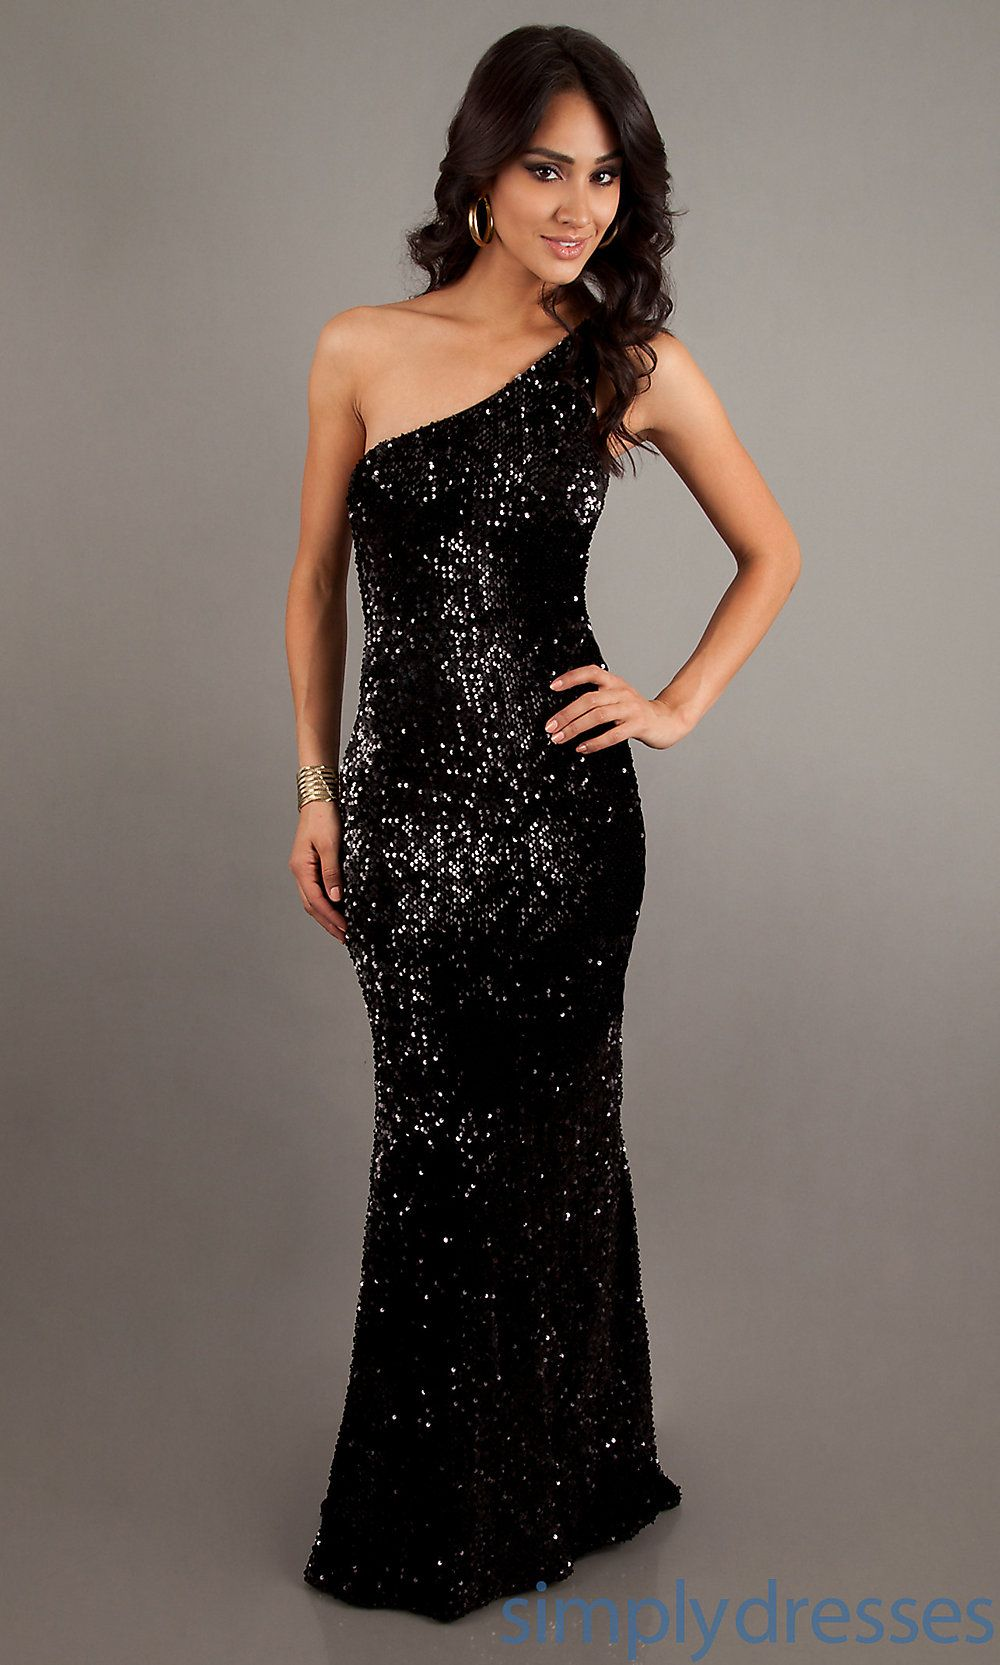 Black Sequin Prom Dress | Imaginary Closet. | Pinterest | Sequin ...